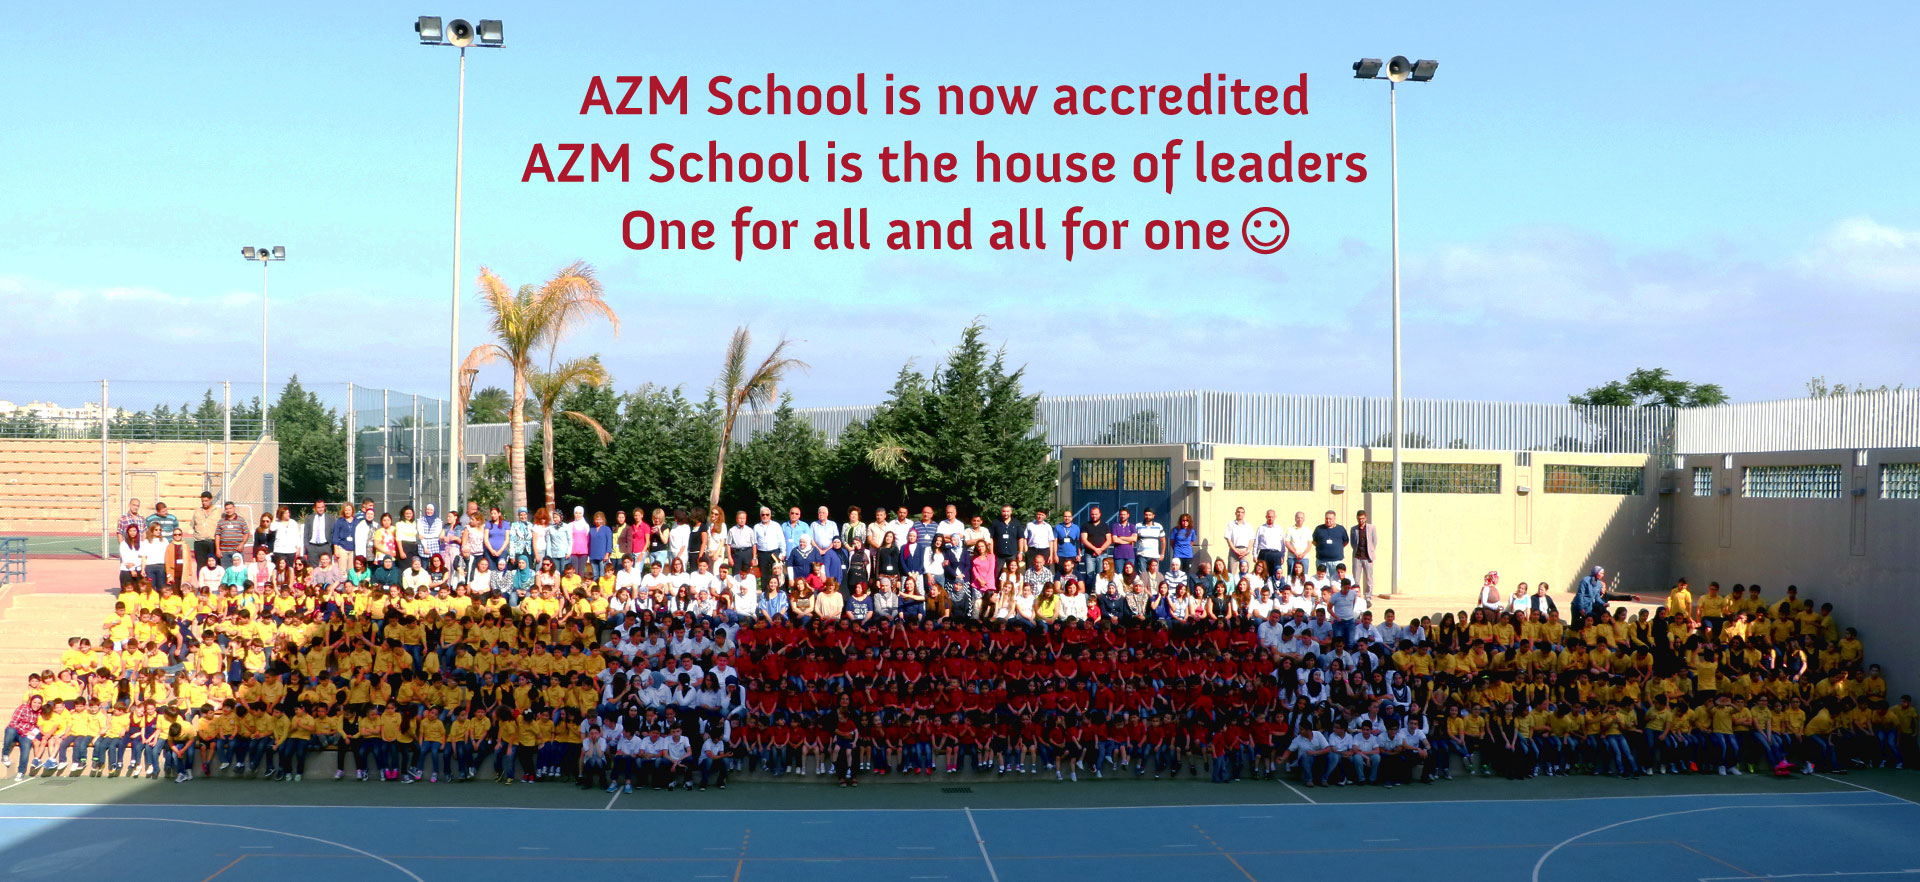 AZM School is now accredited by AdvancED